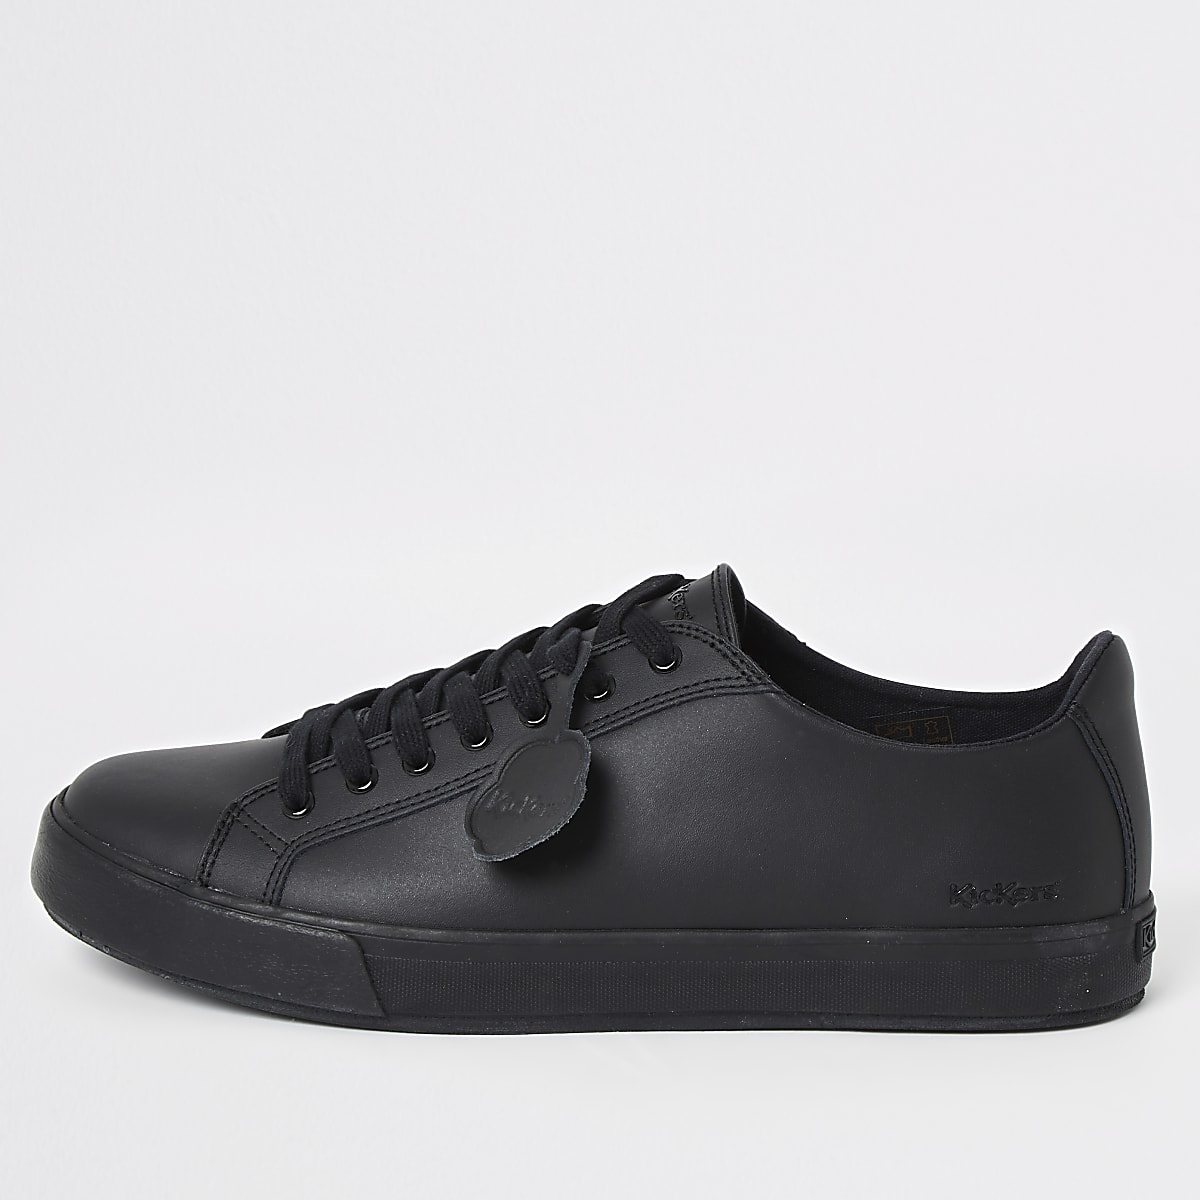 Kickers black leather trainers